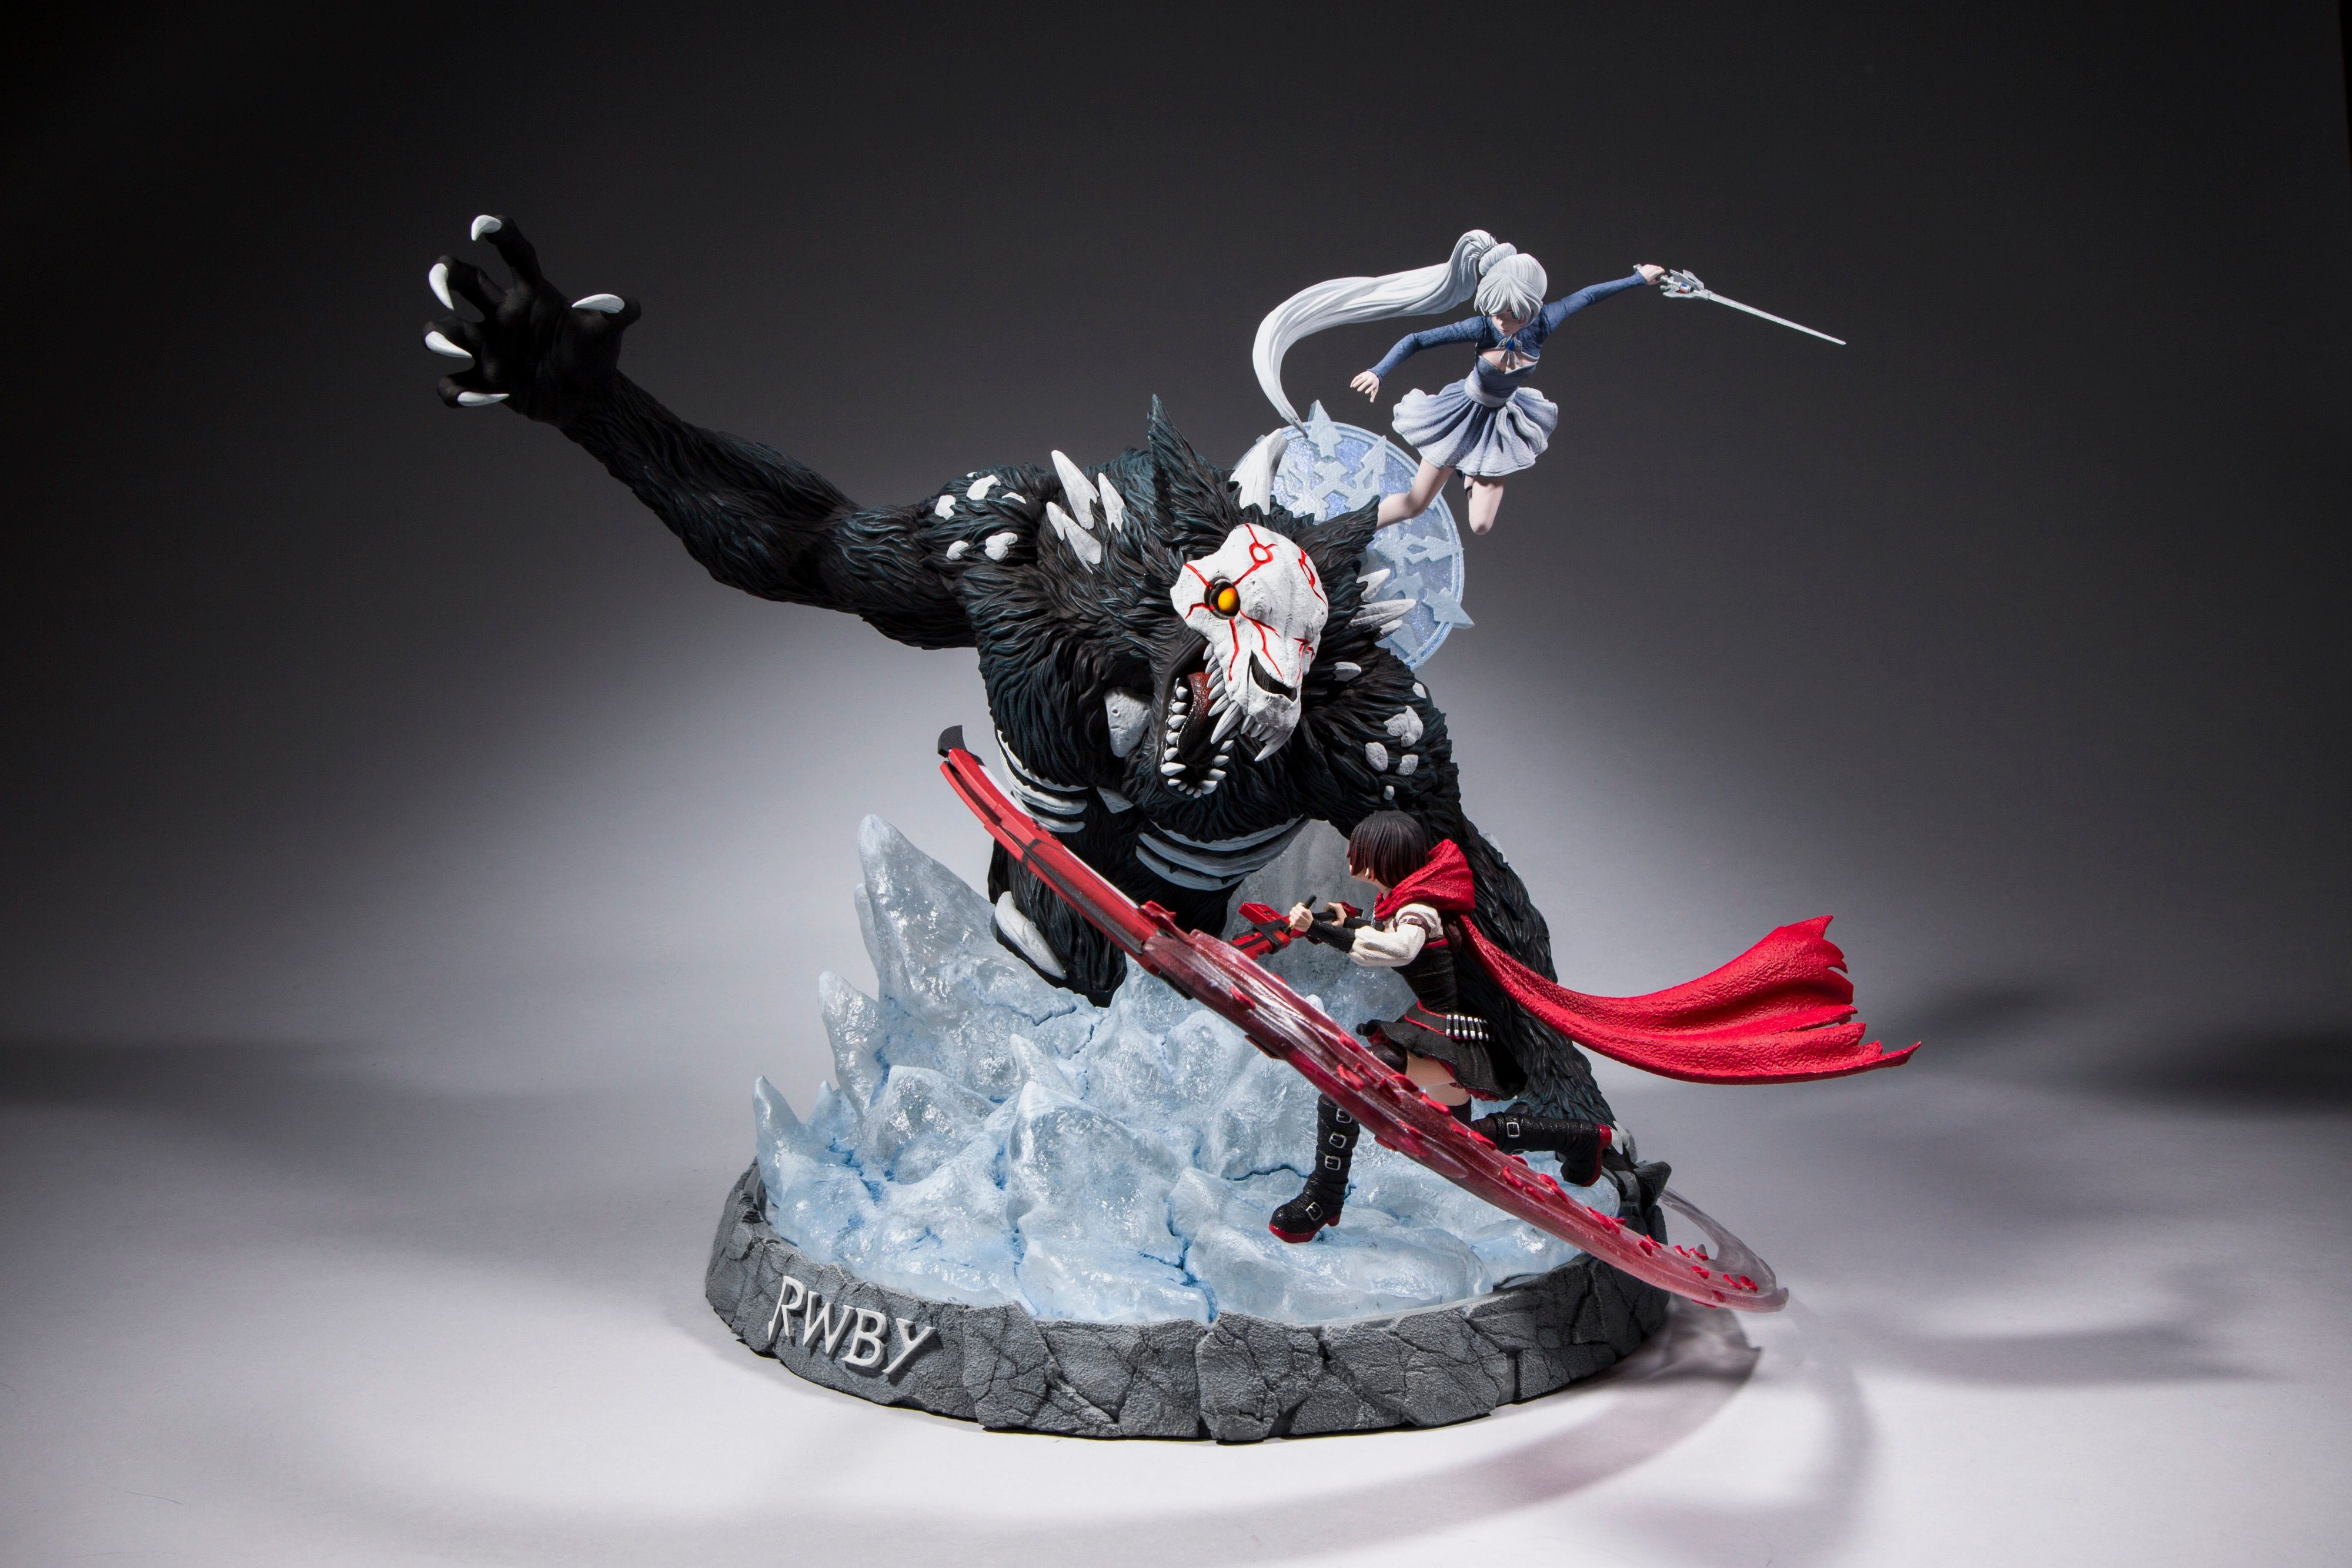 RWBY McFarlane Toys Statue: Weiss and Ruby Battle an Alpha